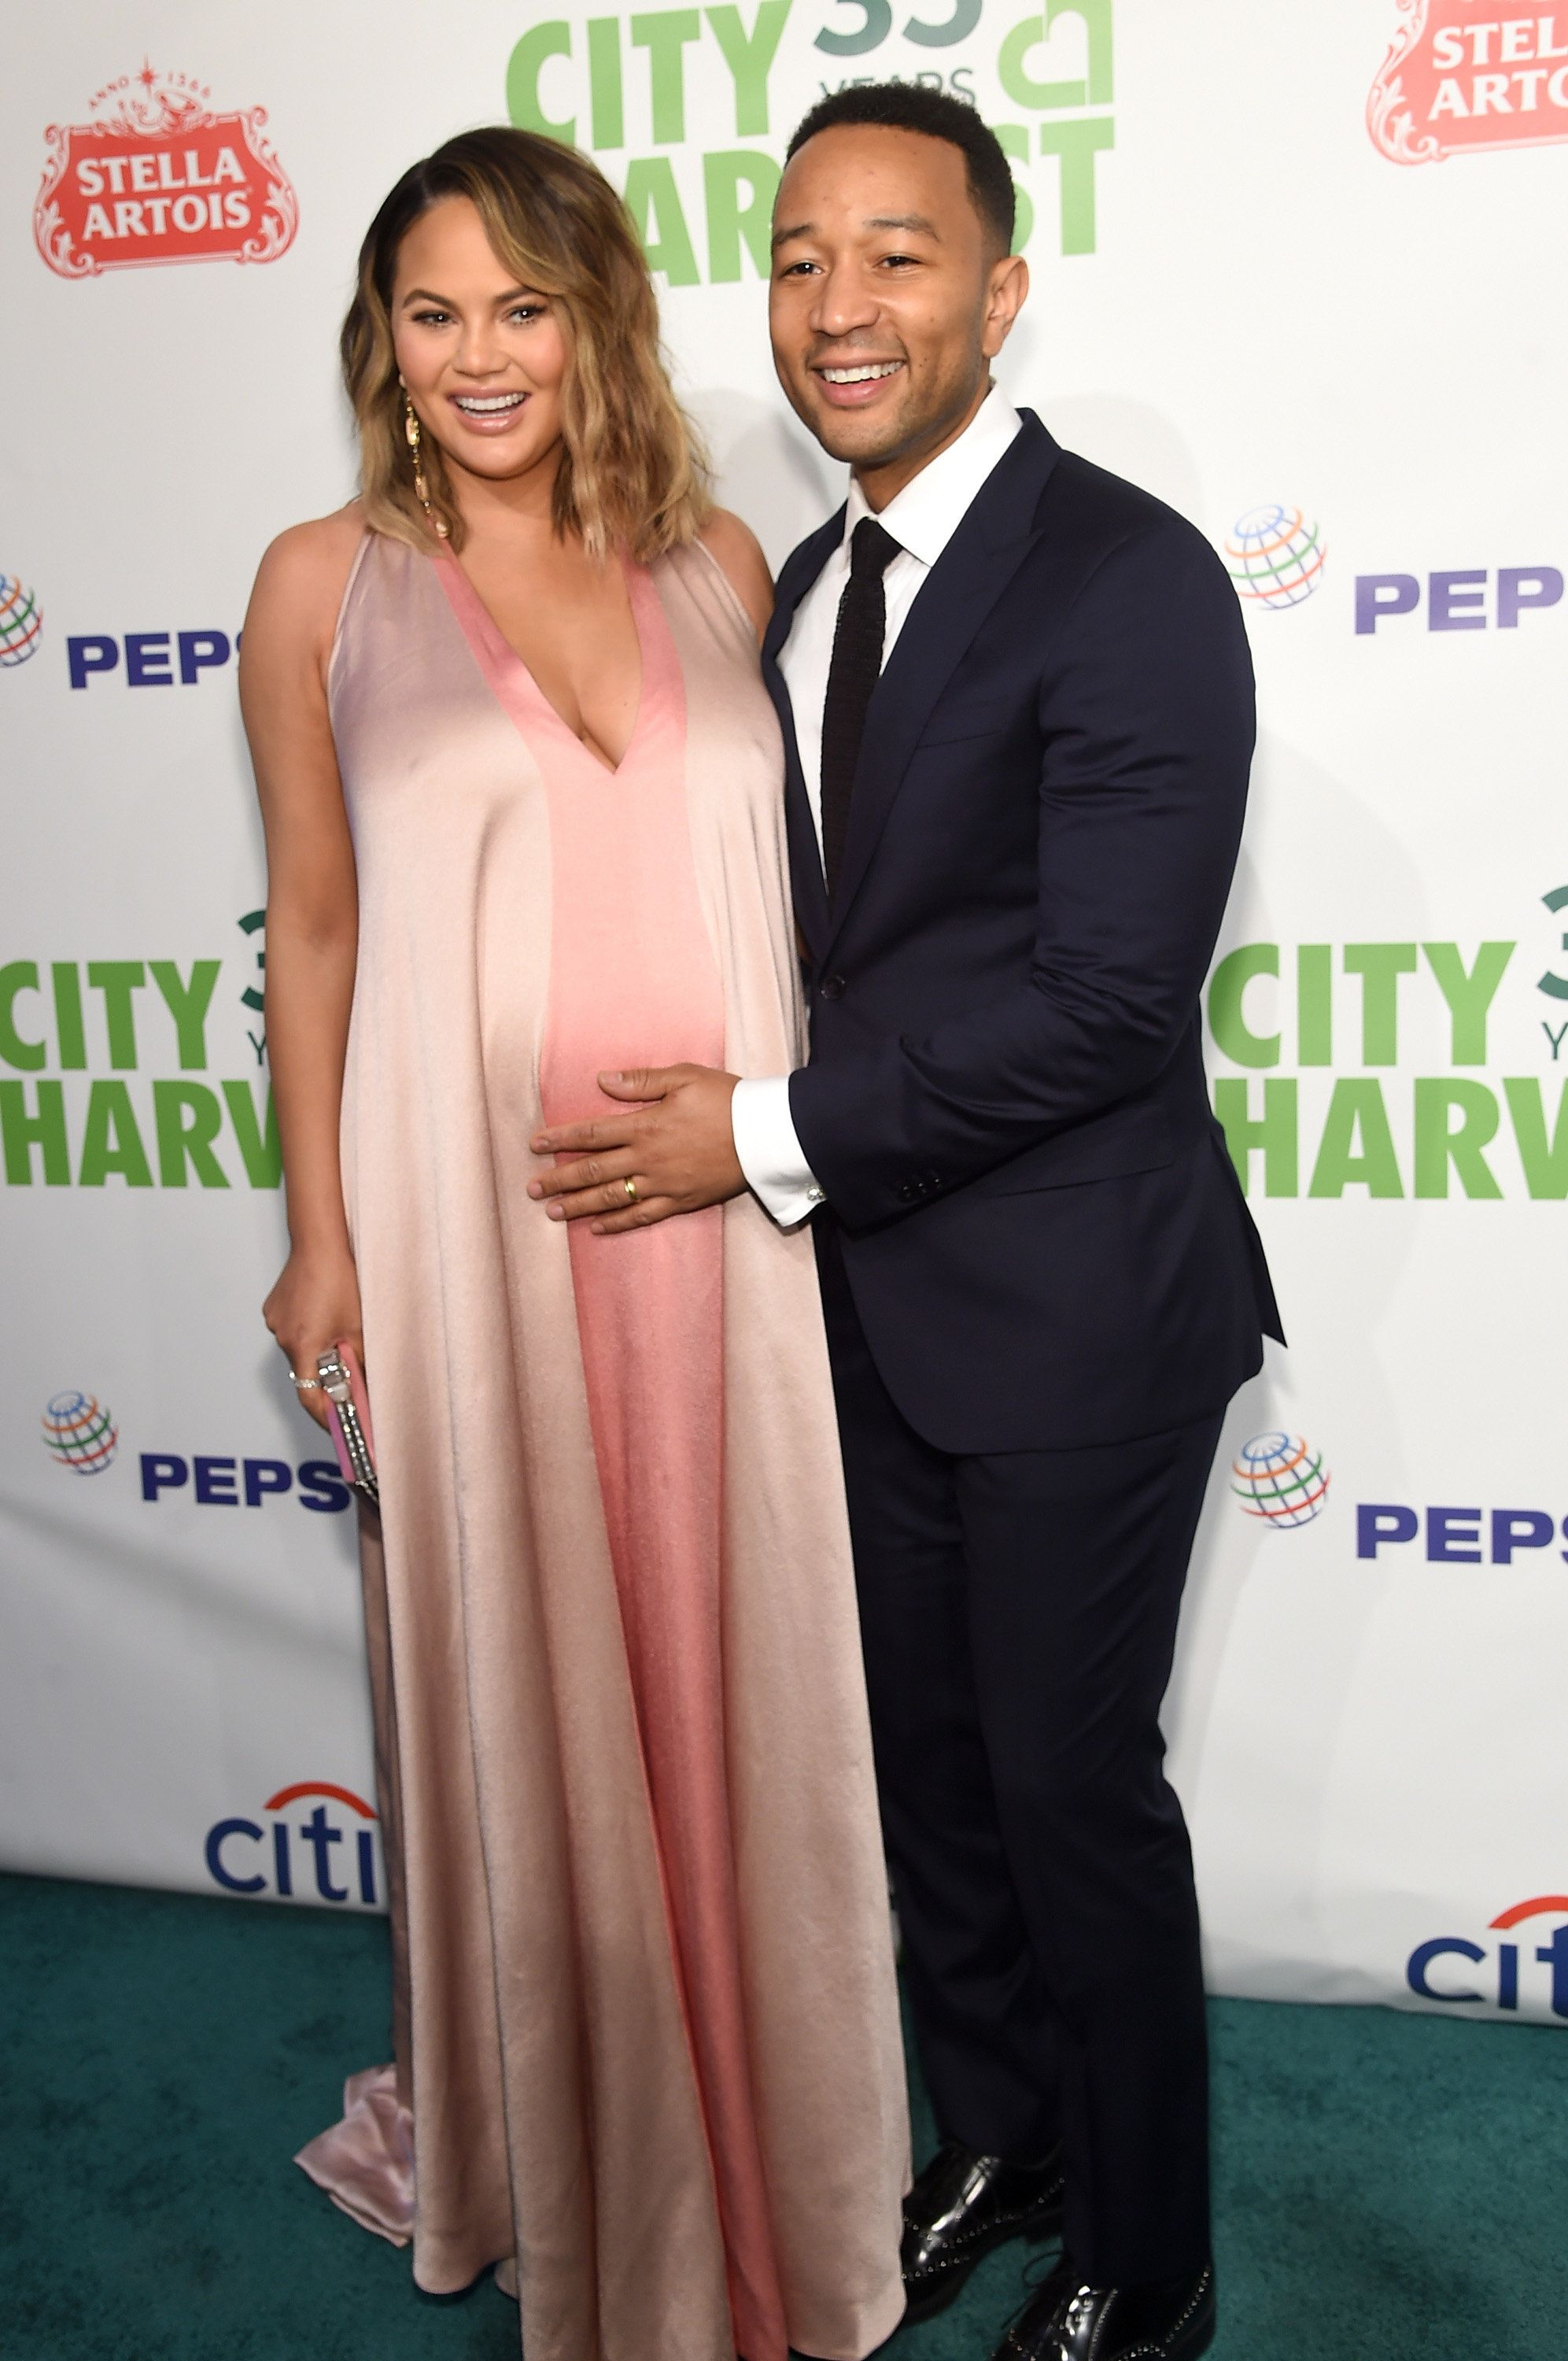 NEW YORK, NY - APRIL 24:  Chrissy Teigen and John Legend attend City Harvest's 35th Anniversary Gala at Cipriani 42nd Street on April 24, 2018 in New York City.  (Photo by Jamie McCarthy/Getty Images for City Harvest)